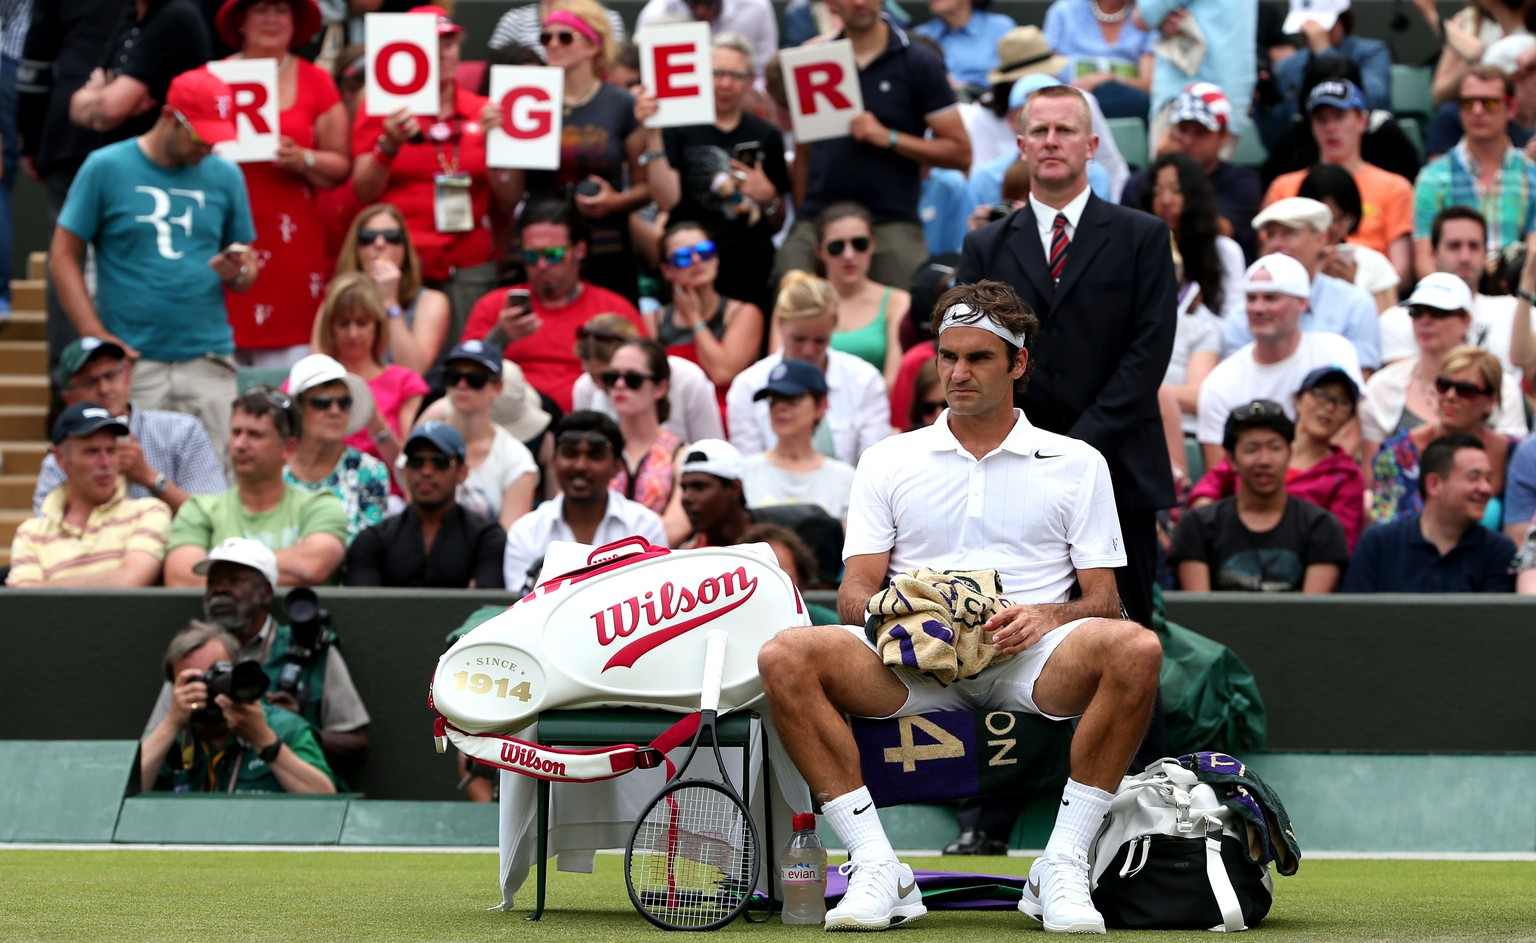 Switzerland's Roger Federer rests between sets during his men's singles first round match against Italy's Paolo Lorenzi on day two of the 2014 Wimbledon Championships at The All England Tennis Club in Wimbledon, southwest London, on June 24, 2014. AFP PHOTO / ANDREW YATES  - RESTRICTED TO EDITORIAL USE